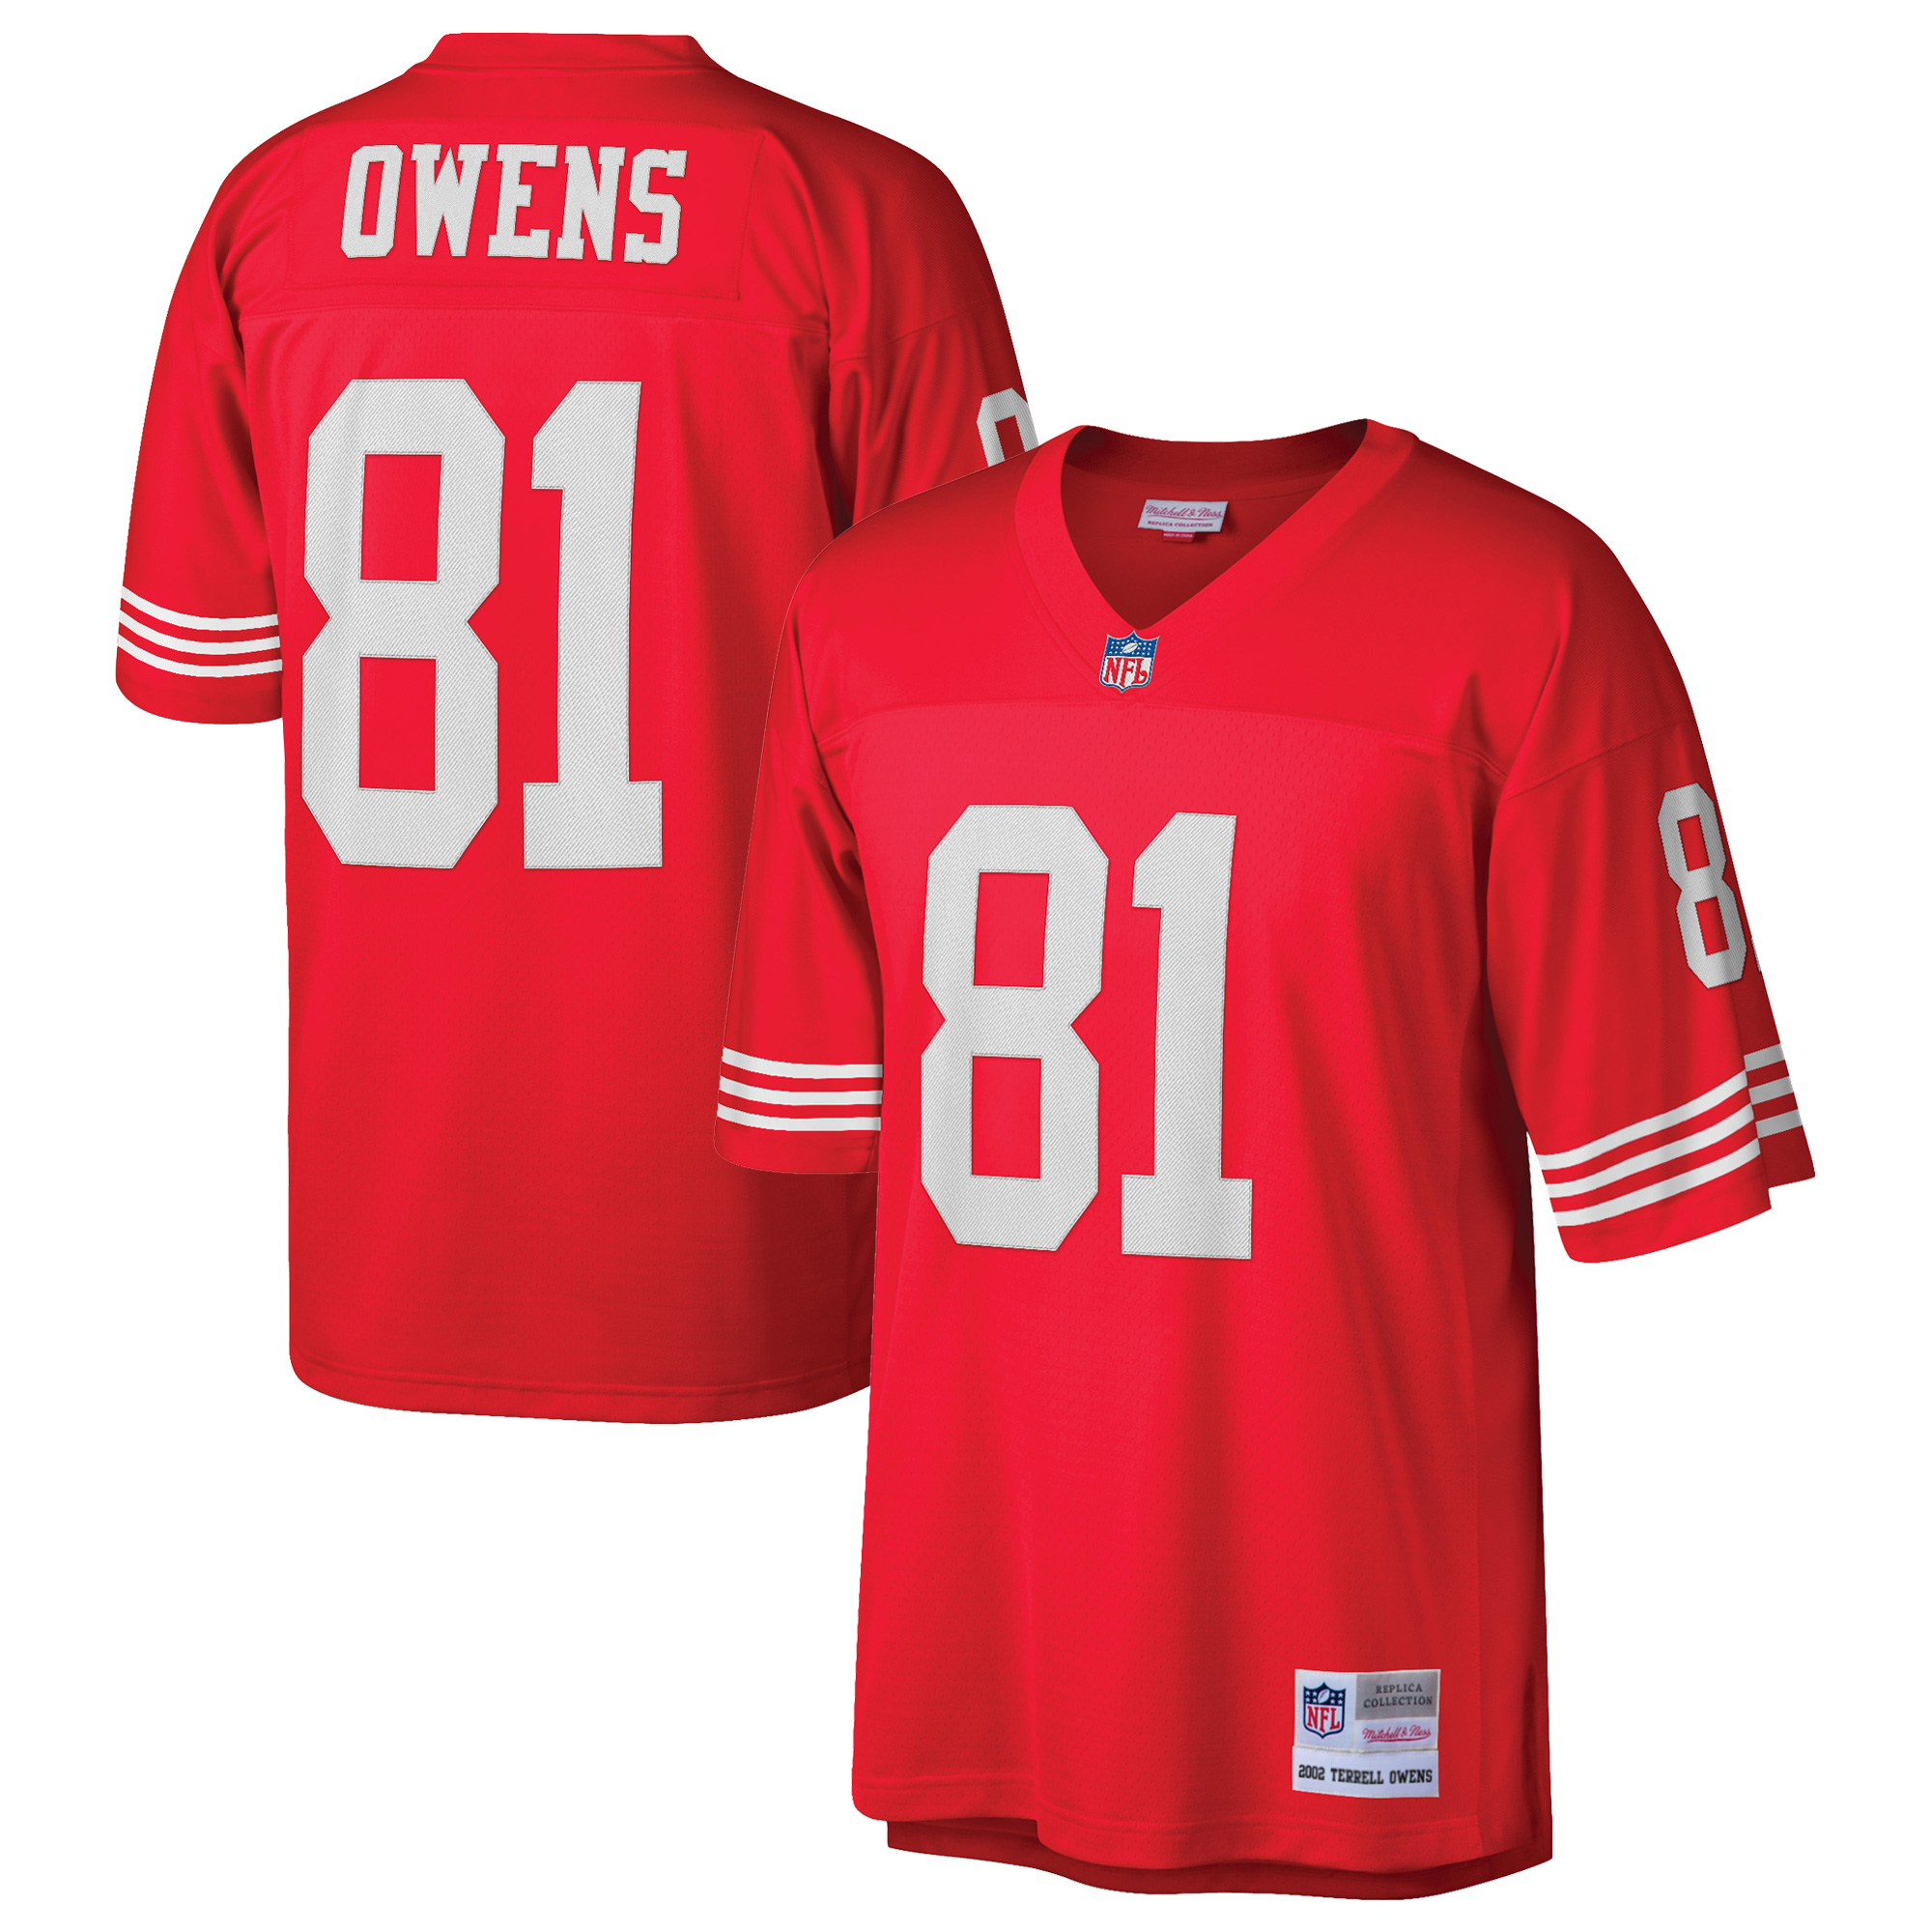 Terrell Owens San Francisco 49ers Mitchell & Ness Retired Player Replica Jersey - Scarlet